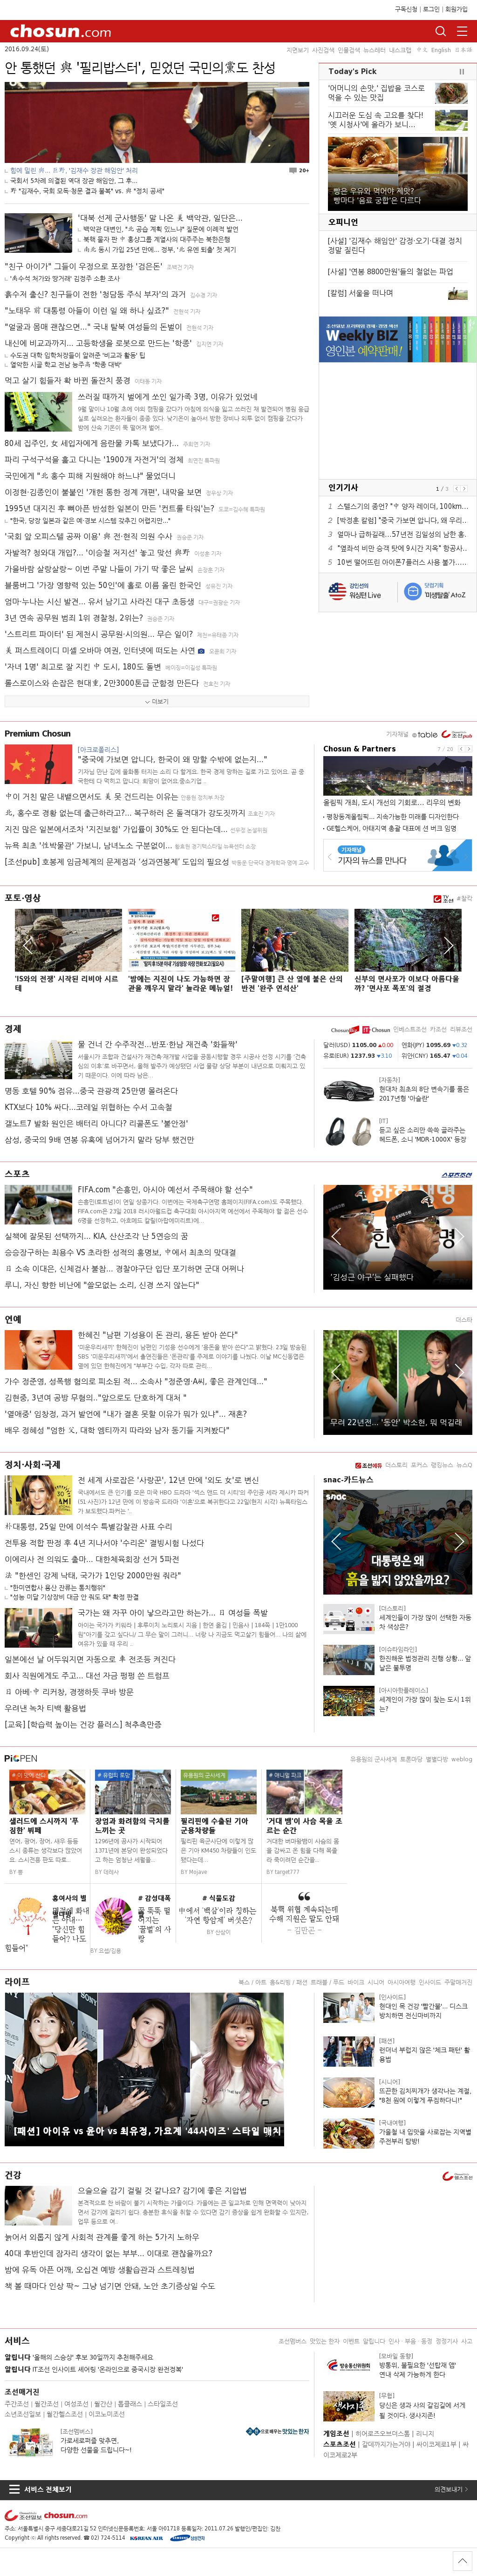 chosun.com at Friday Sept. 23, 2016, 10:01 p.m. UTC